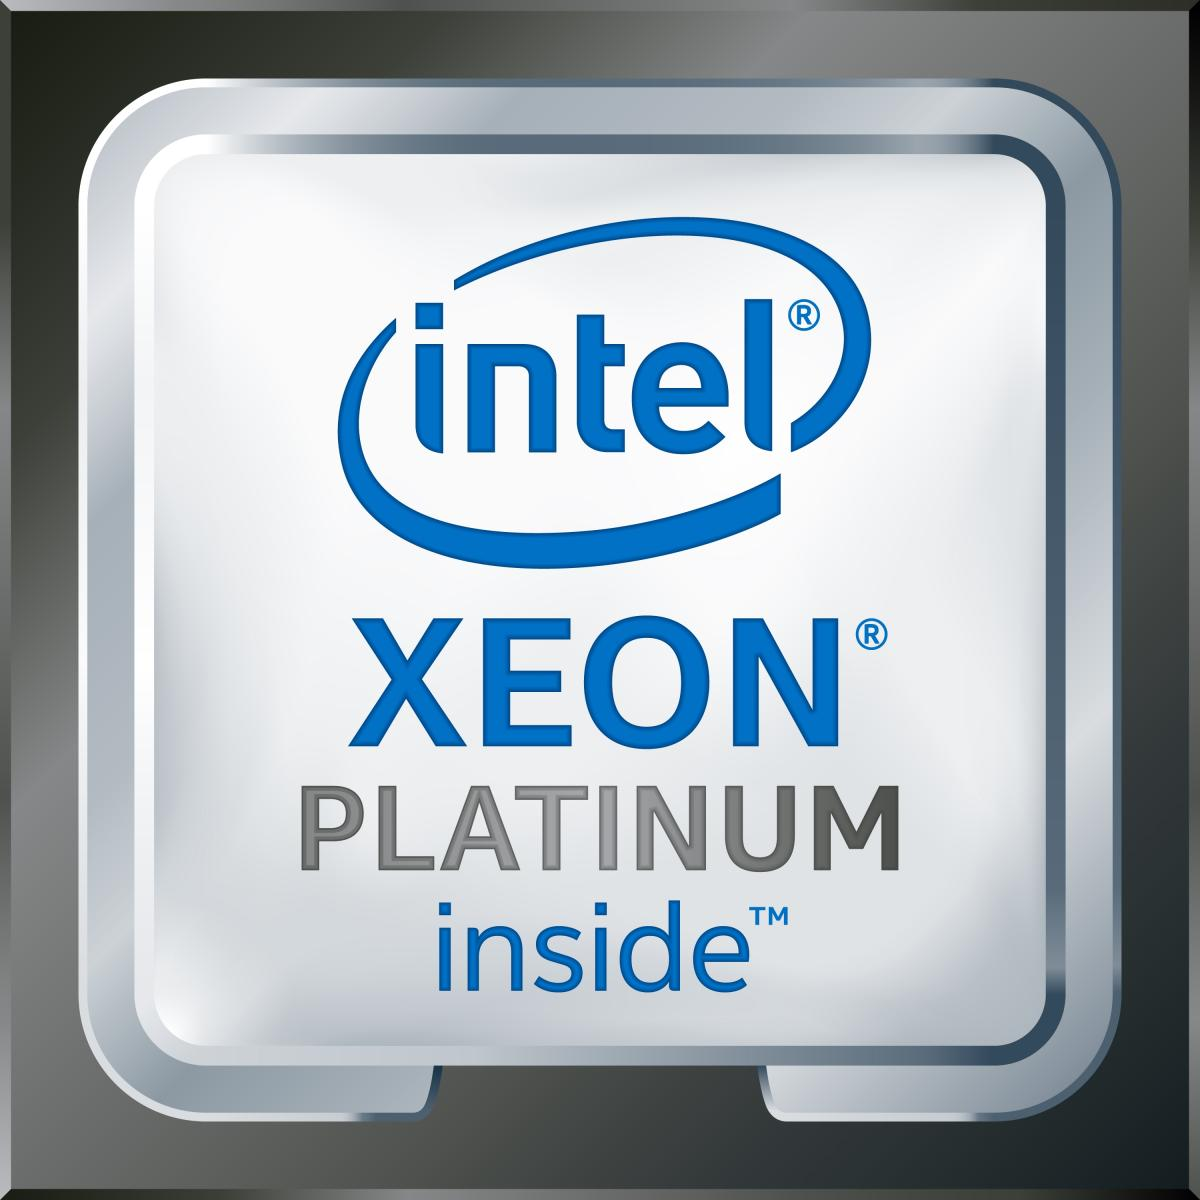 Intel Xeon CPU family